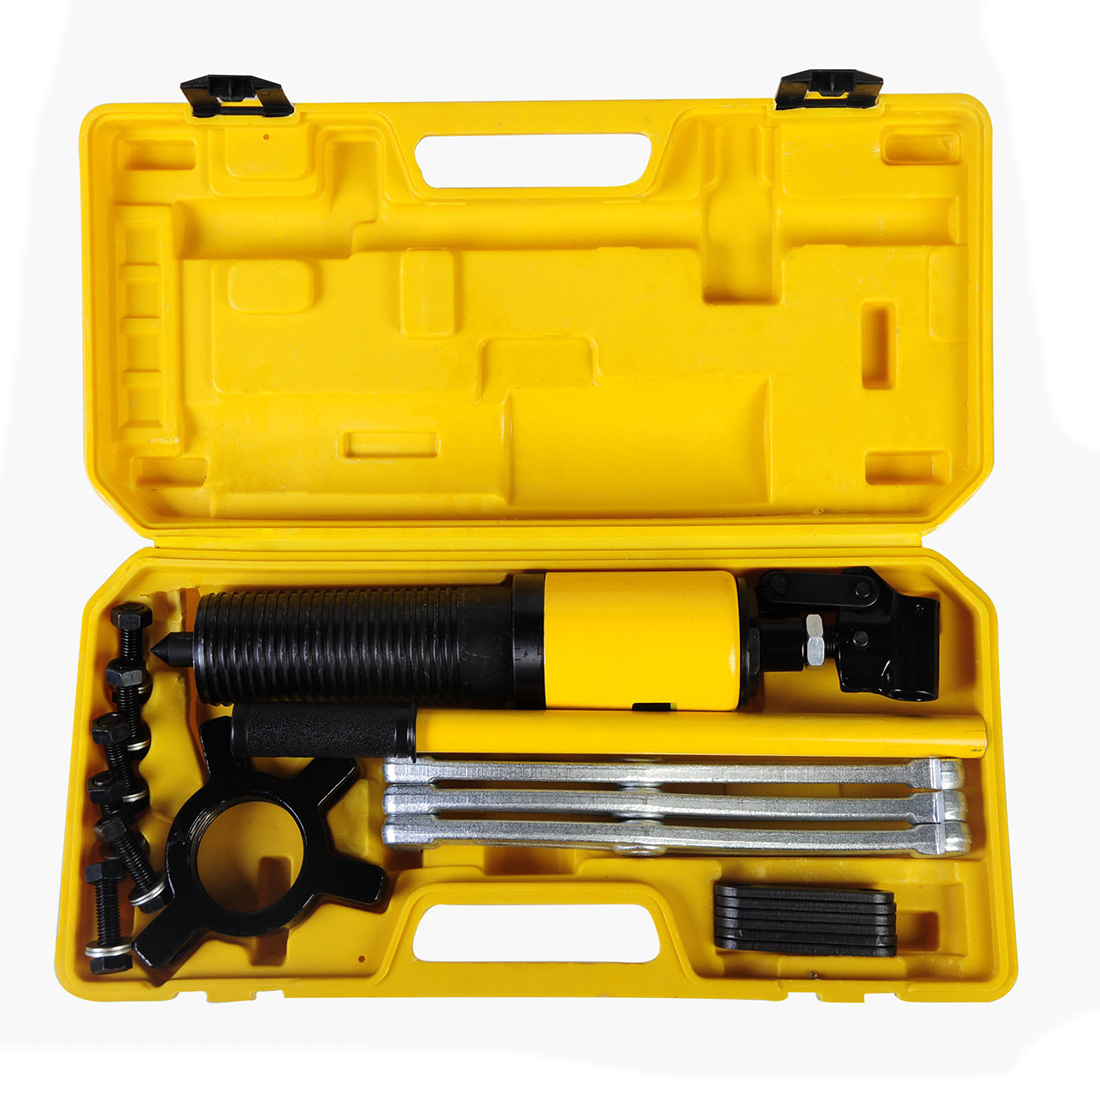 Best Sale 10 Ton Hydraulic Puller Bearing Hub Separator Garage Tool Set Kit best price mgehr1212 2 slot cutter external grooving tool holder turning tool no insert hot sale brand new